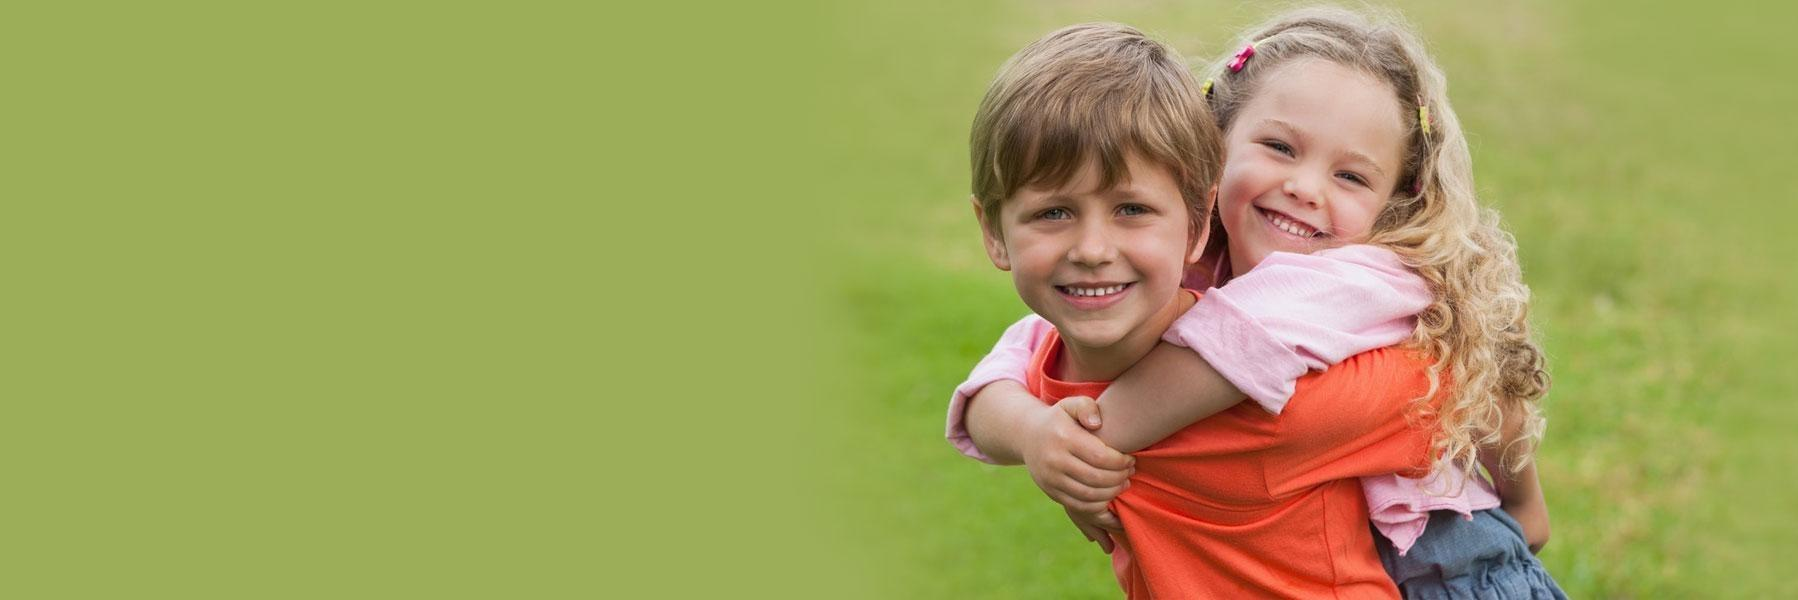 Children's Dentistry | Uptown Comprehensive Dentistry and Prosthodontics